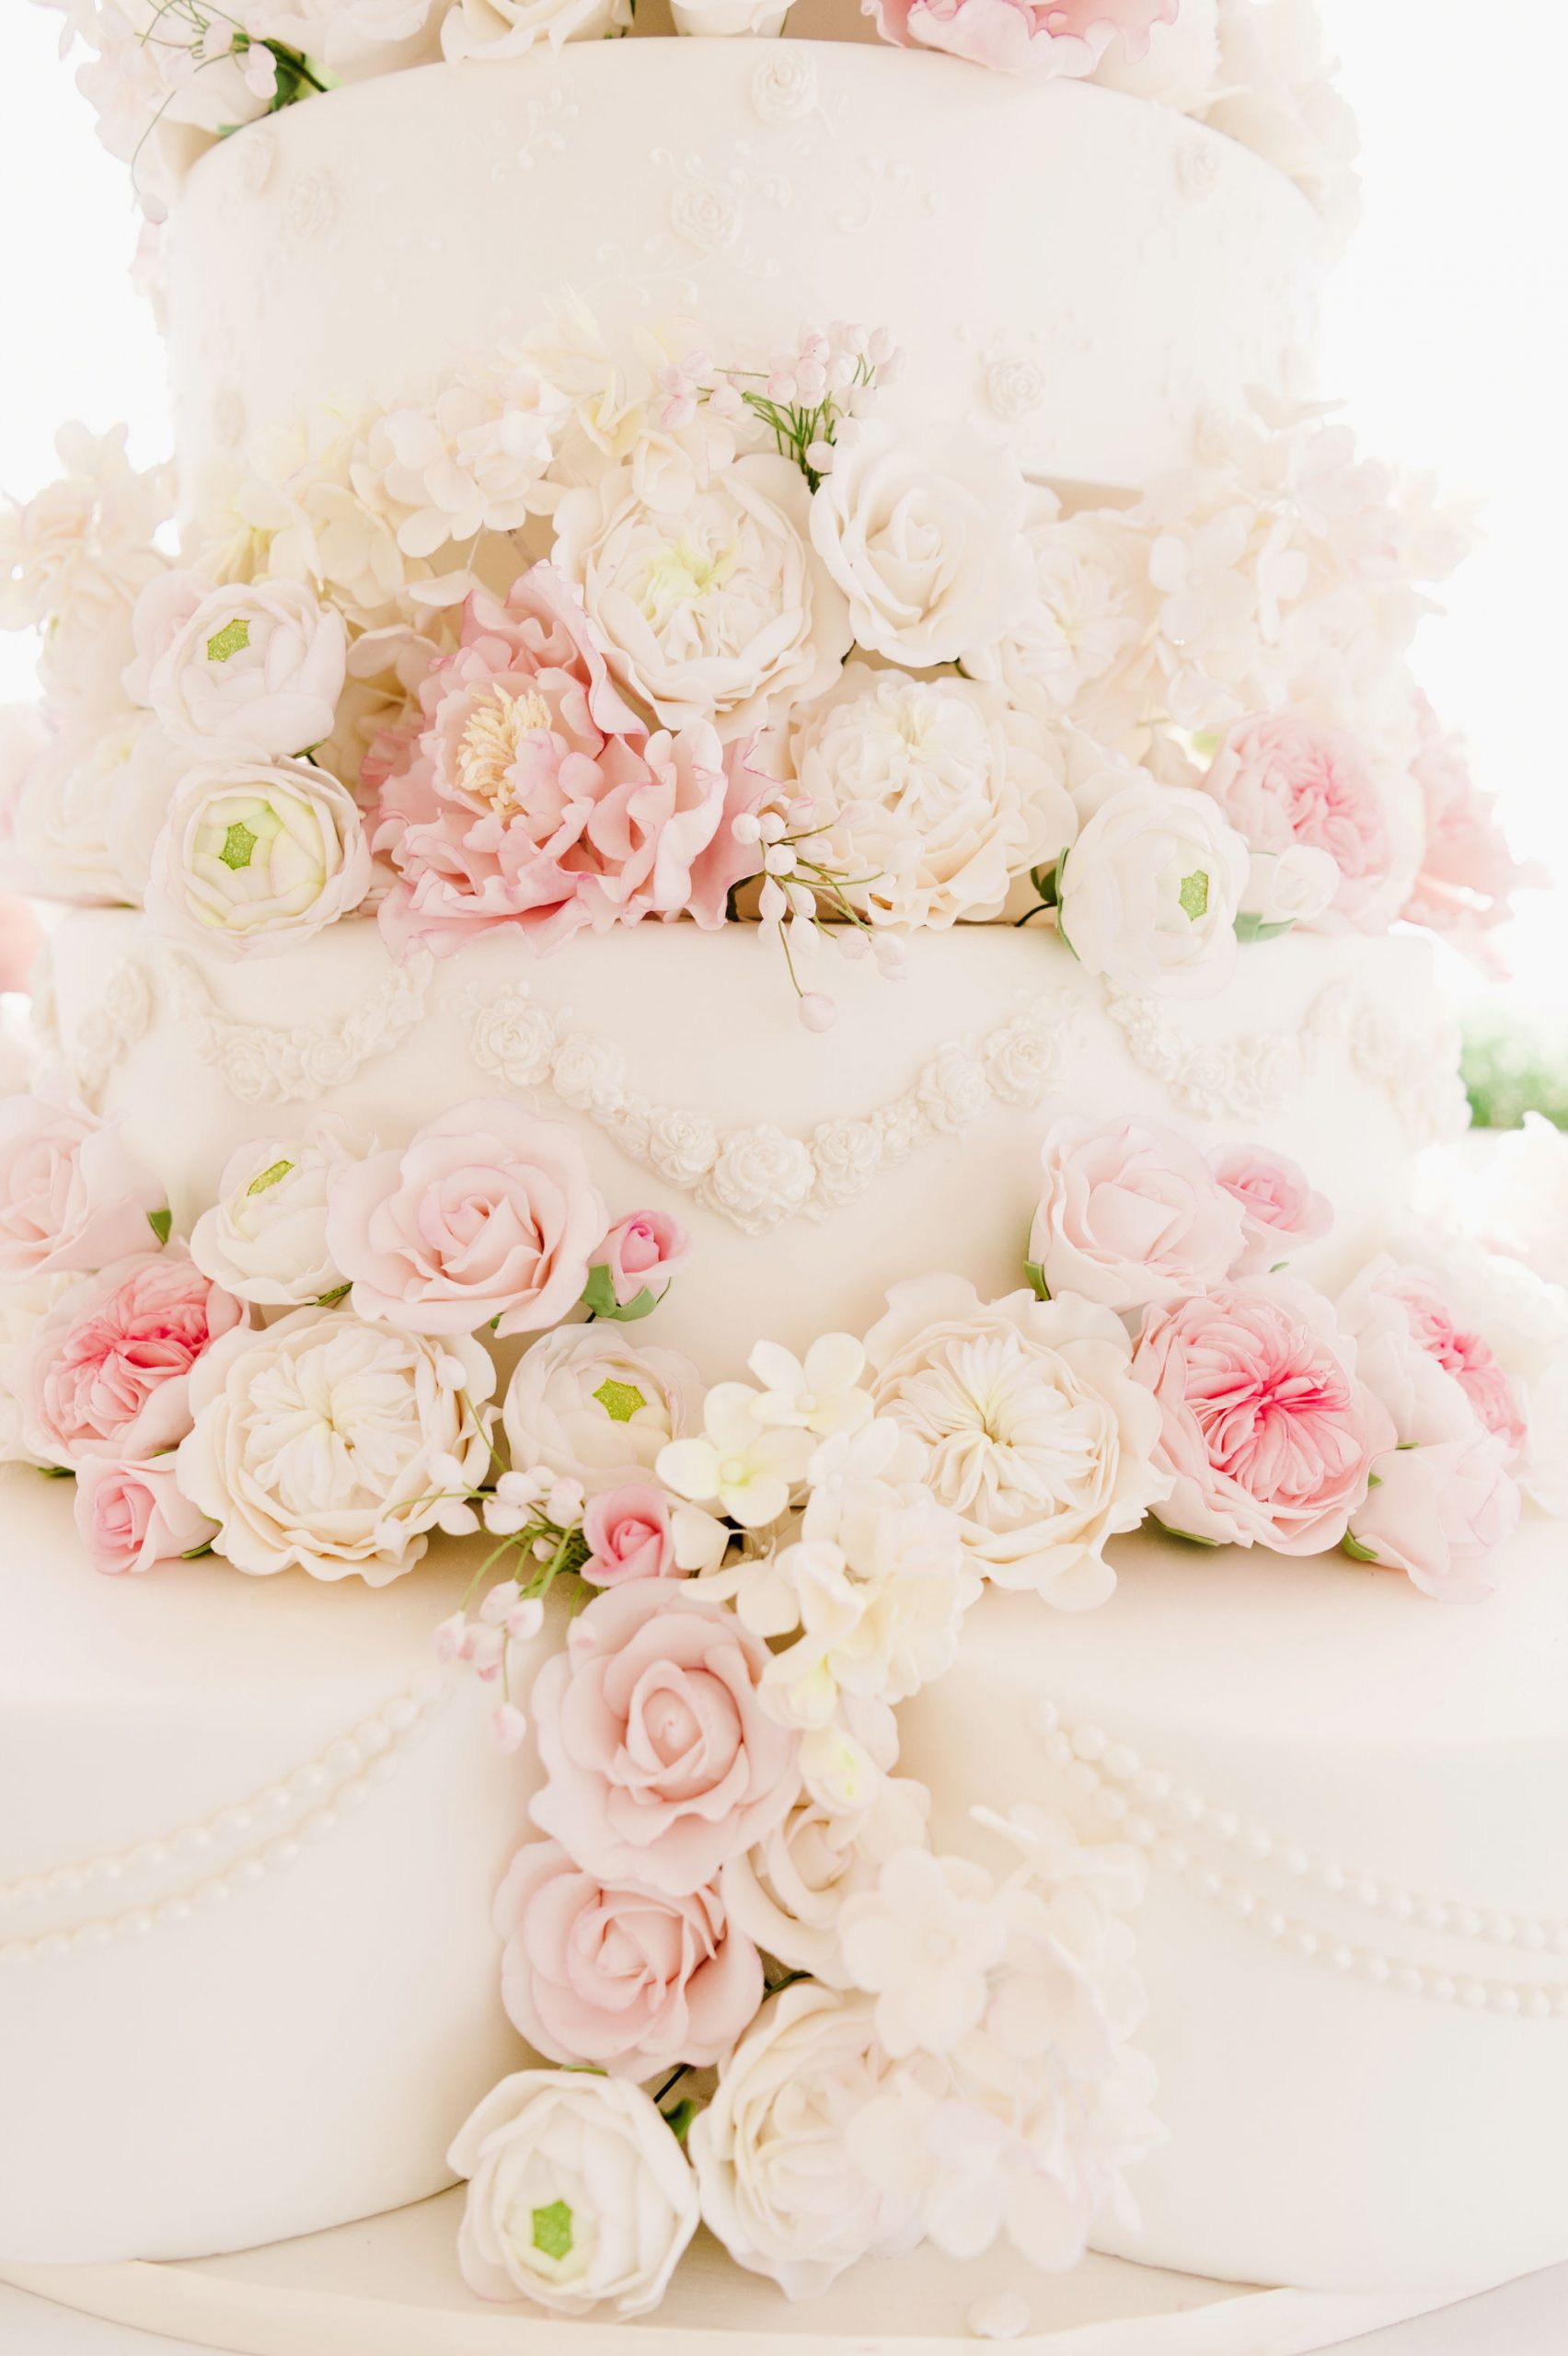 Elegant wedding cake flowers